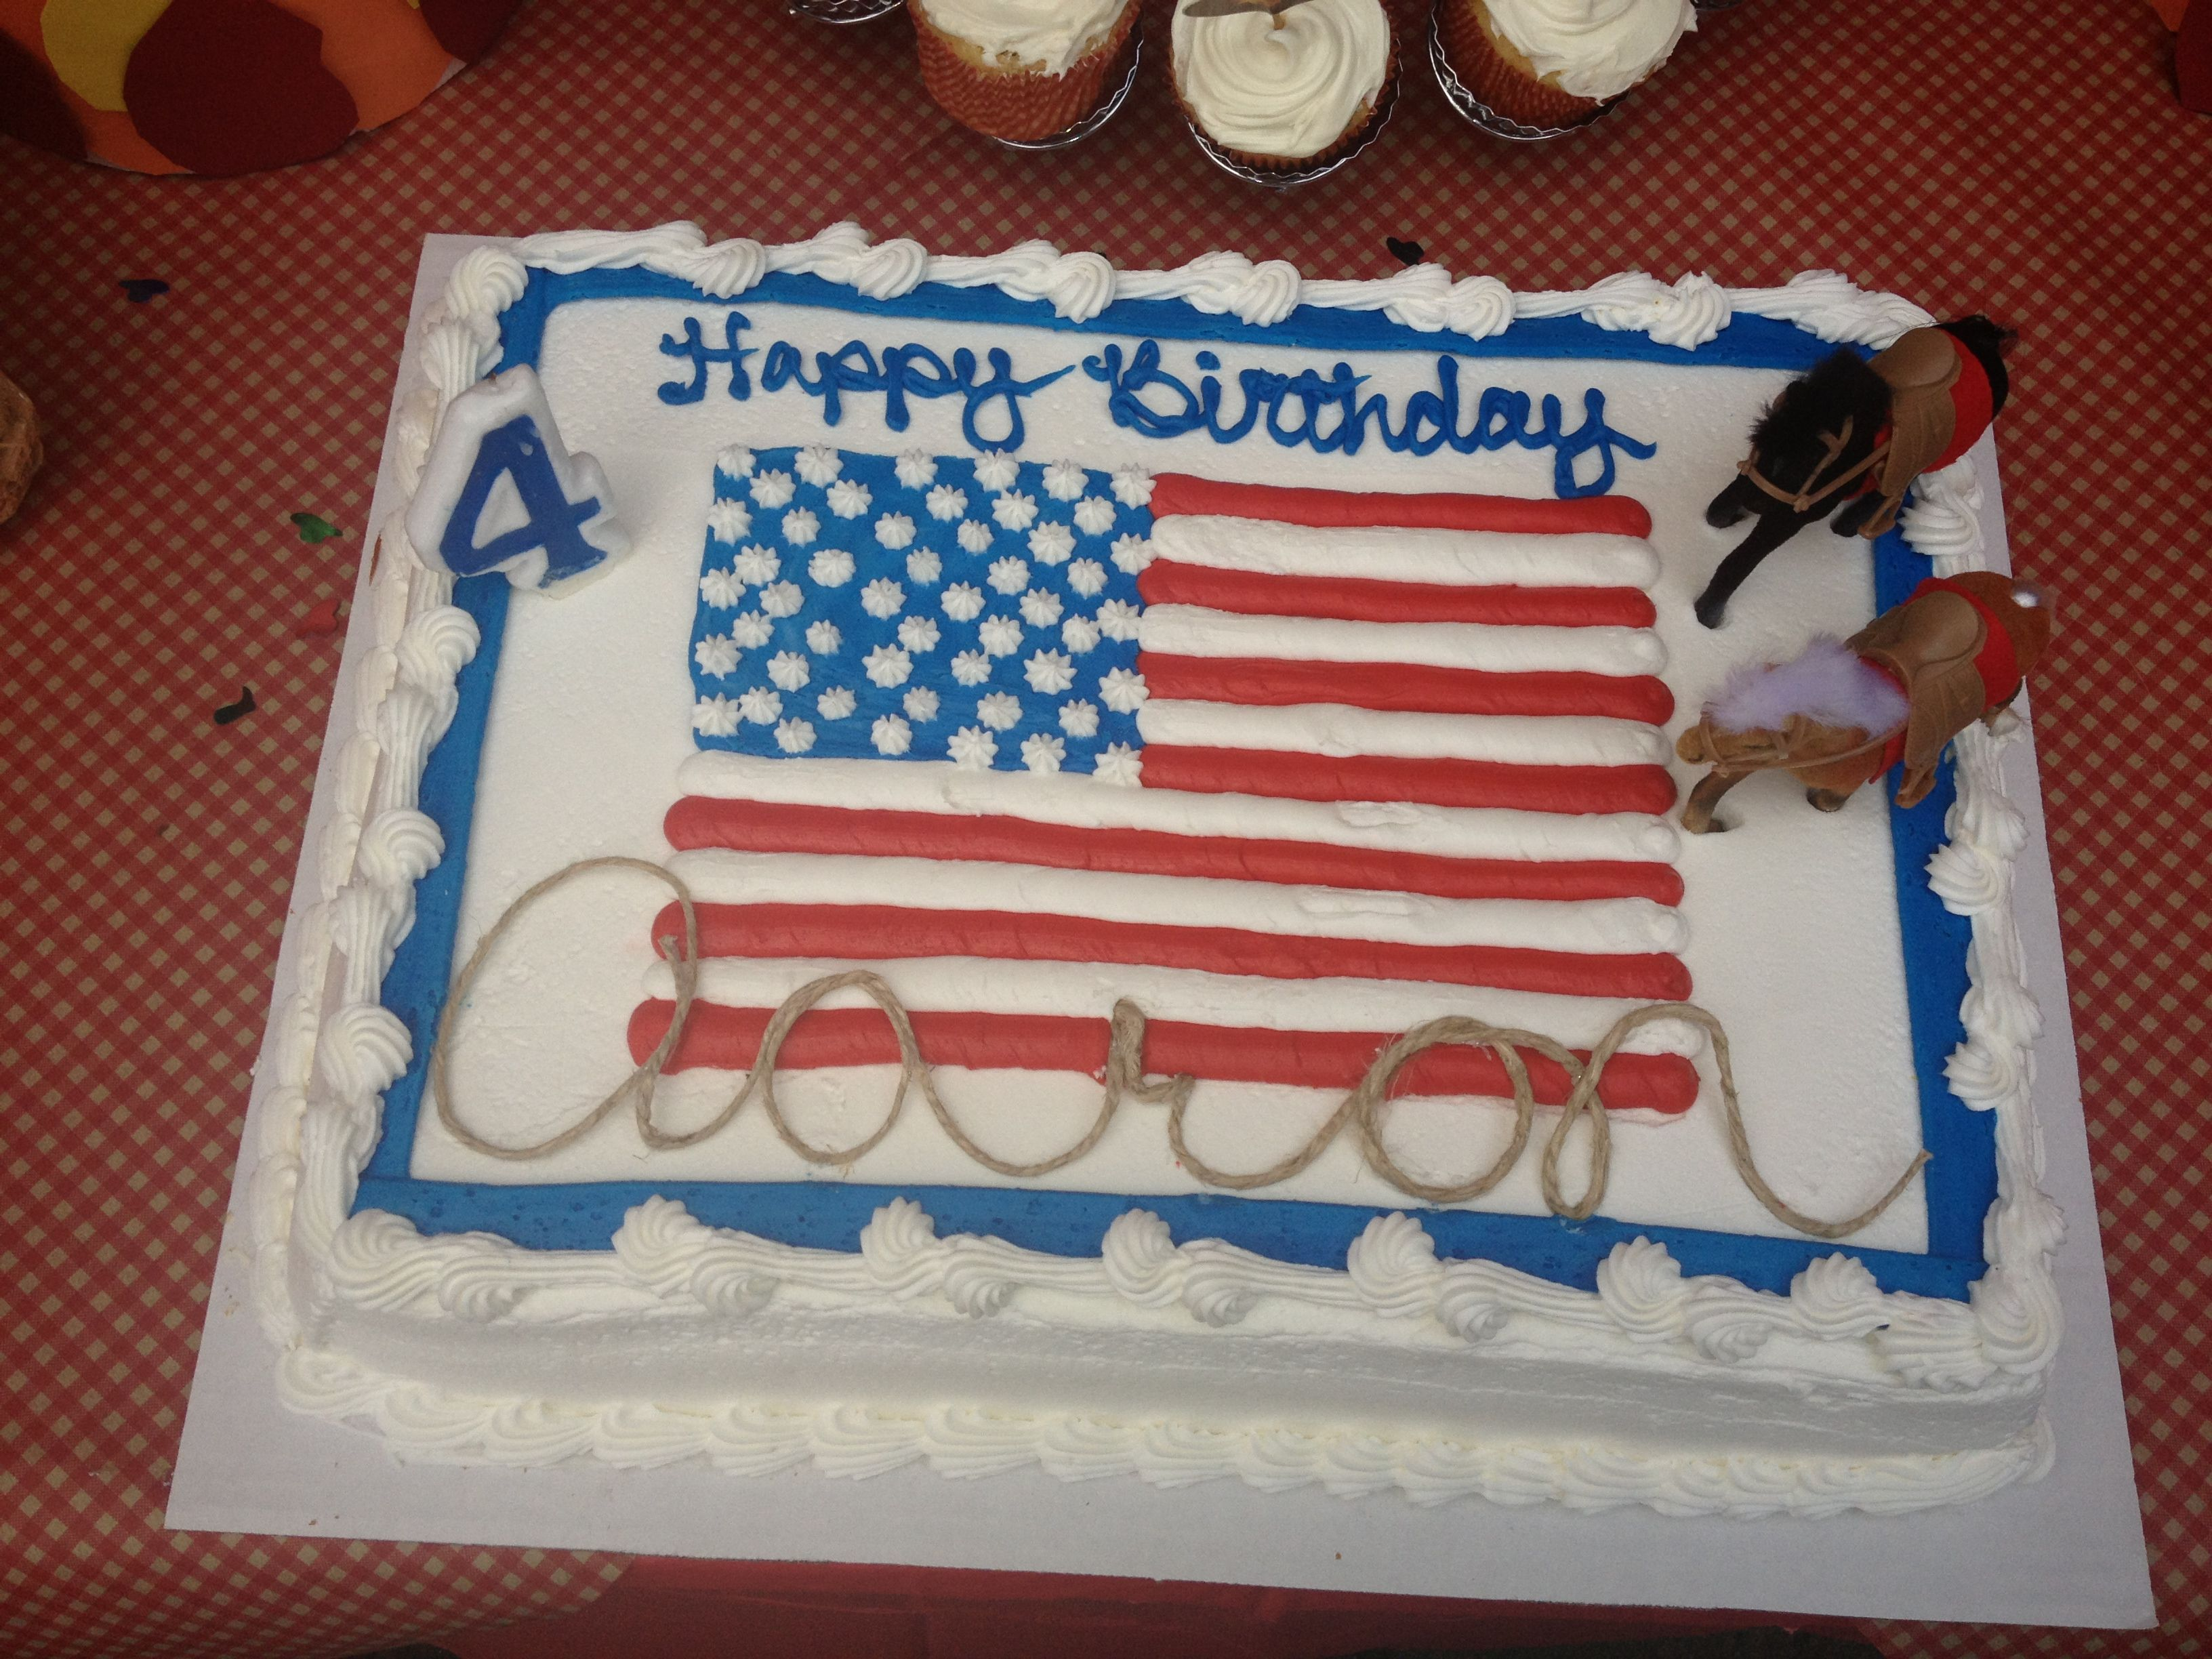 Costco 4th of July cake converted to a western cake